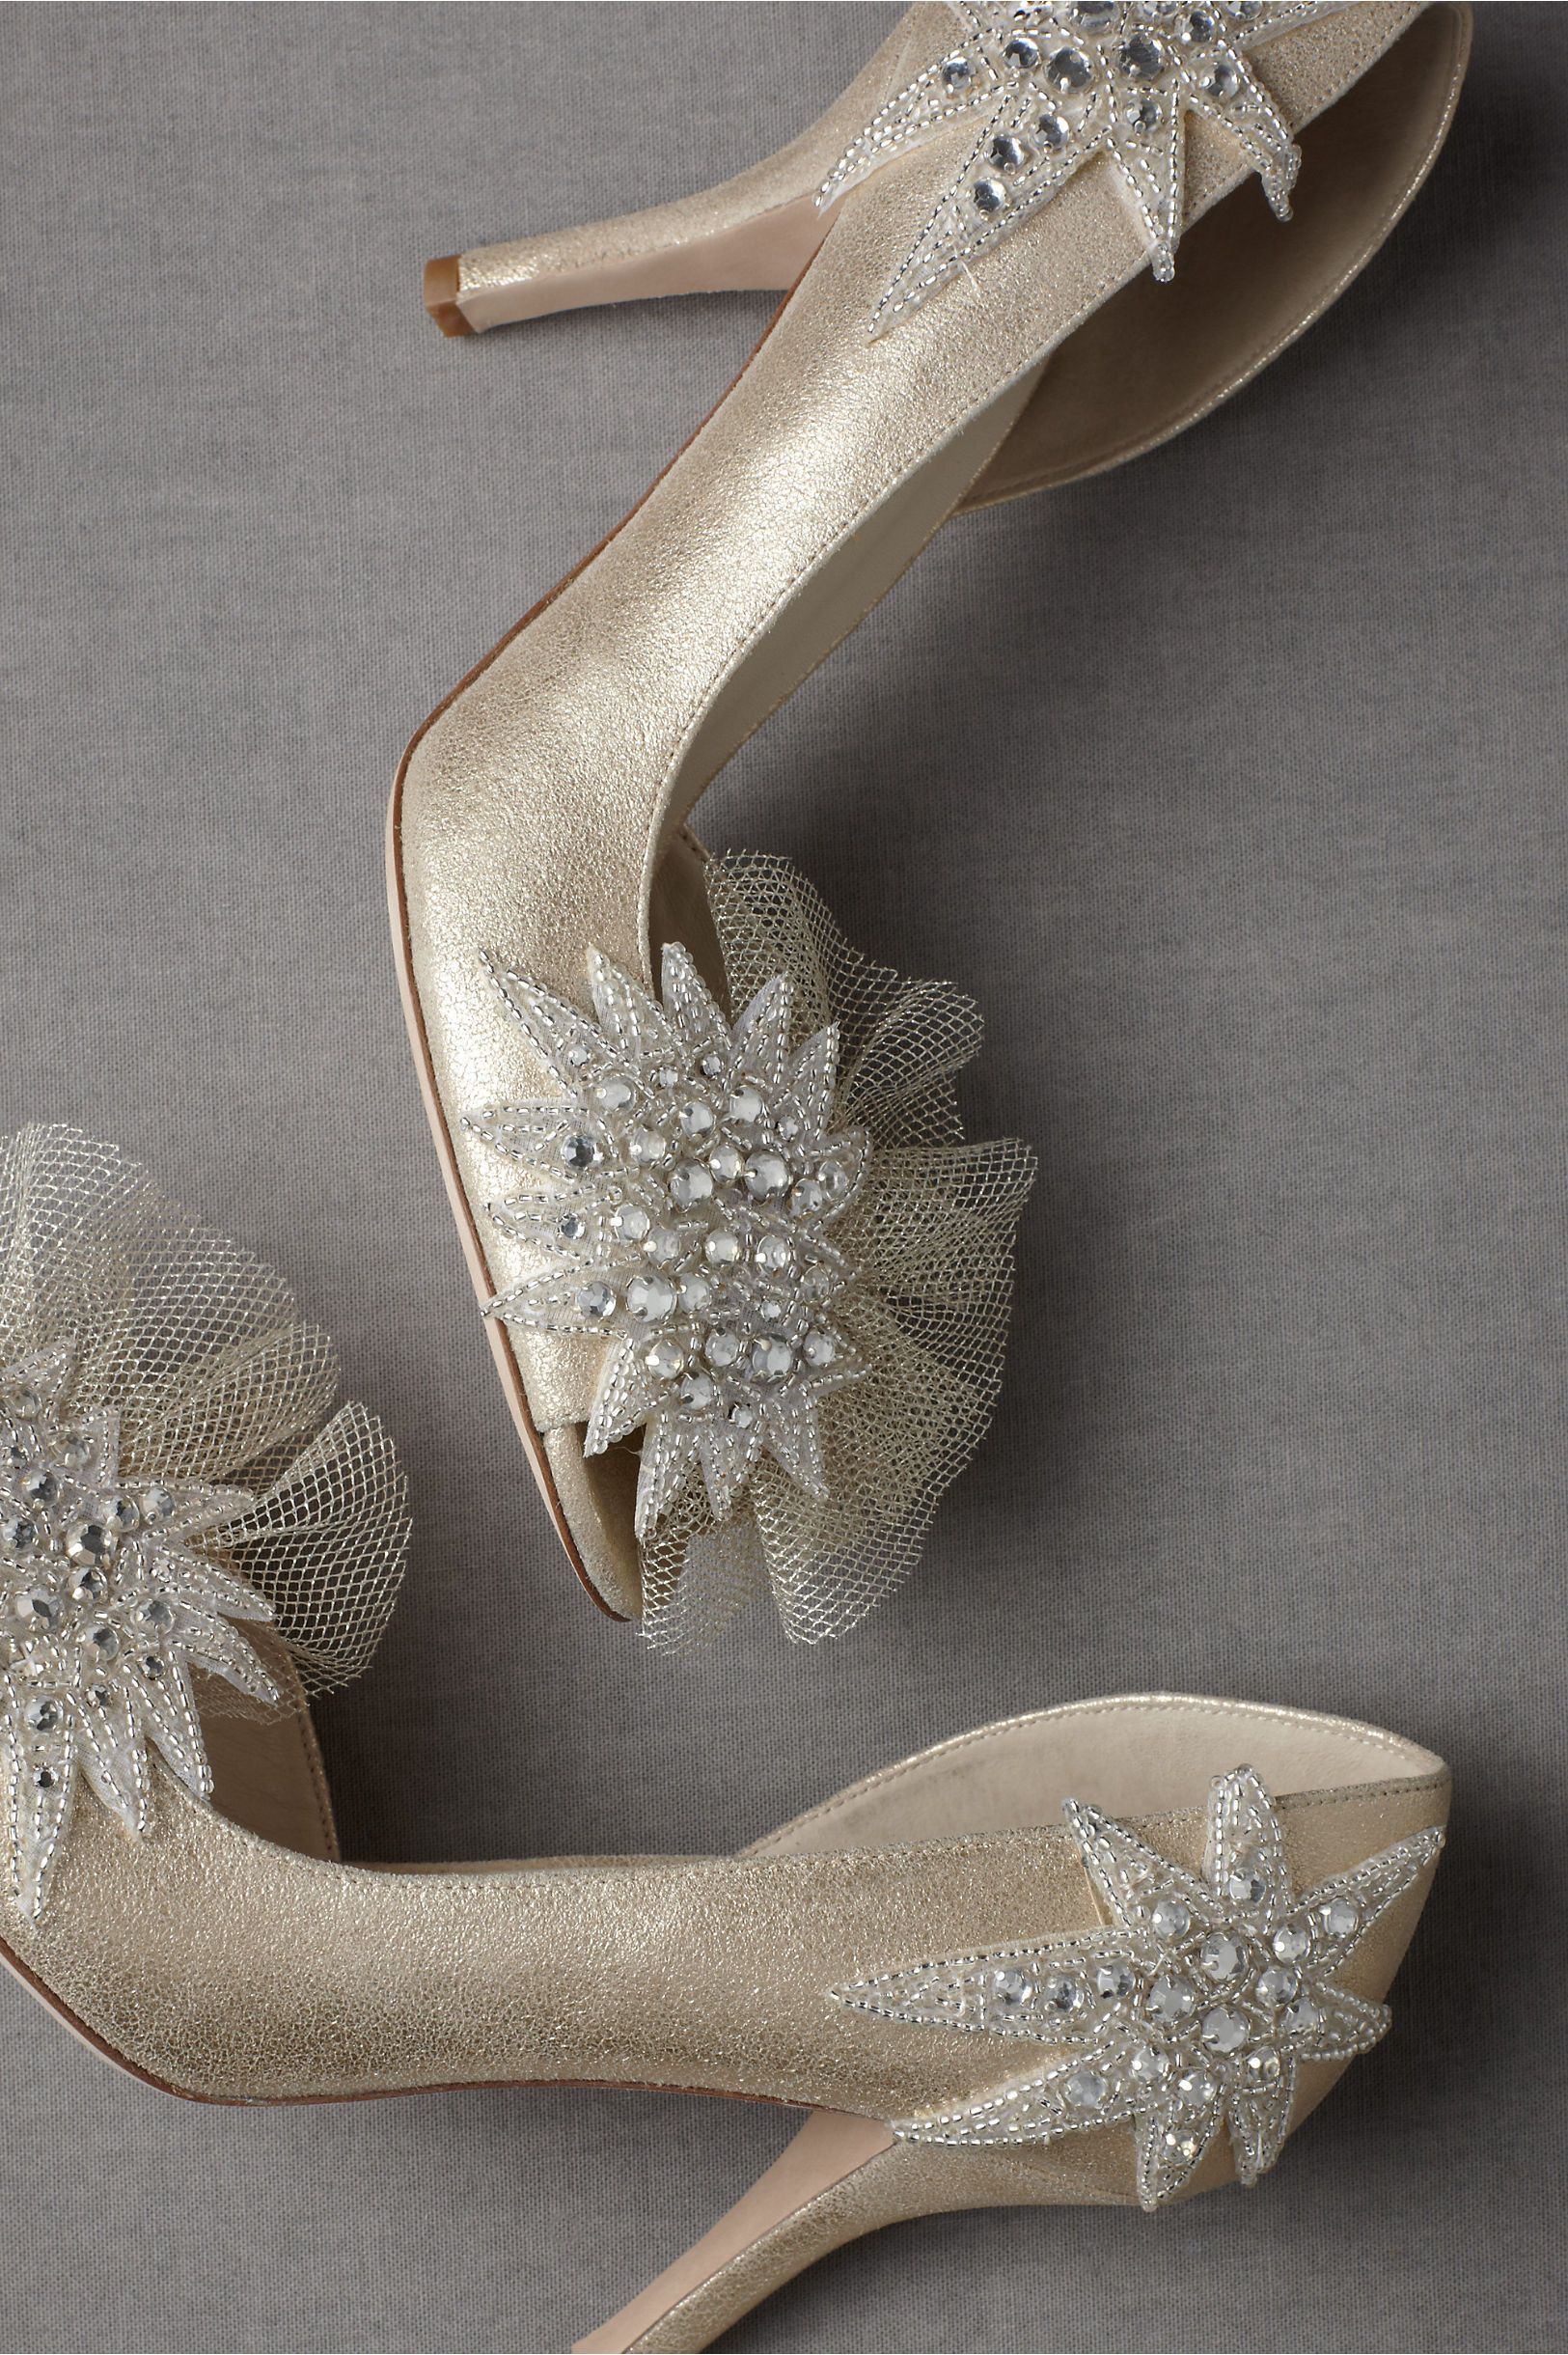 Perfect bridal shoes for the glamorous 1950s style vintage bride. By Bettye Muller.